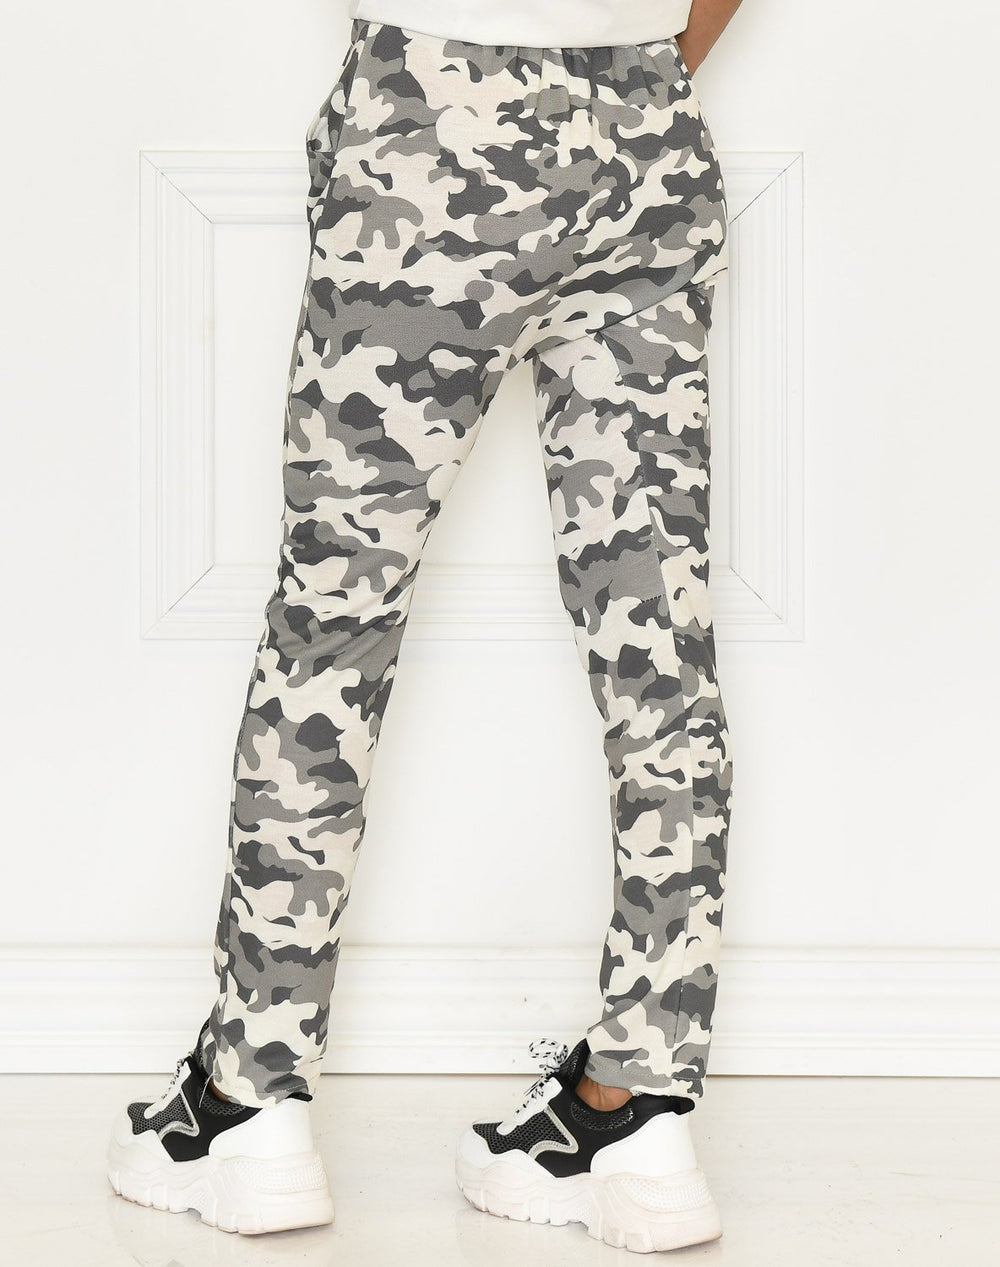 Anna button detail pants green / white - Online-Mode